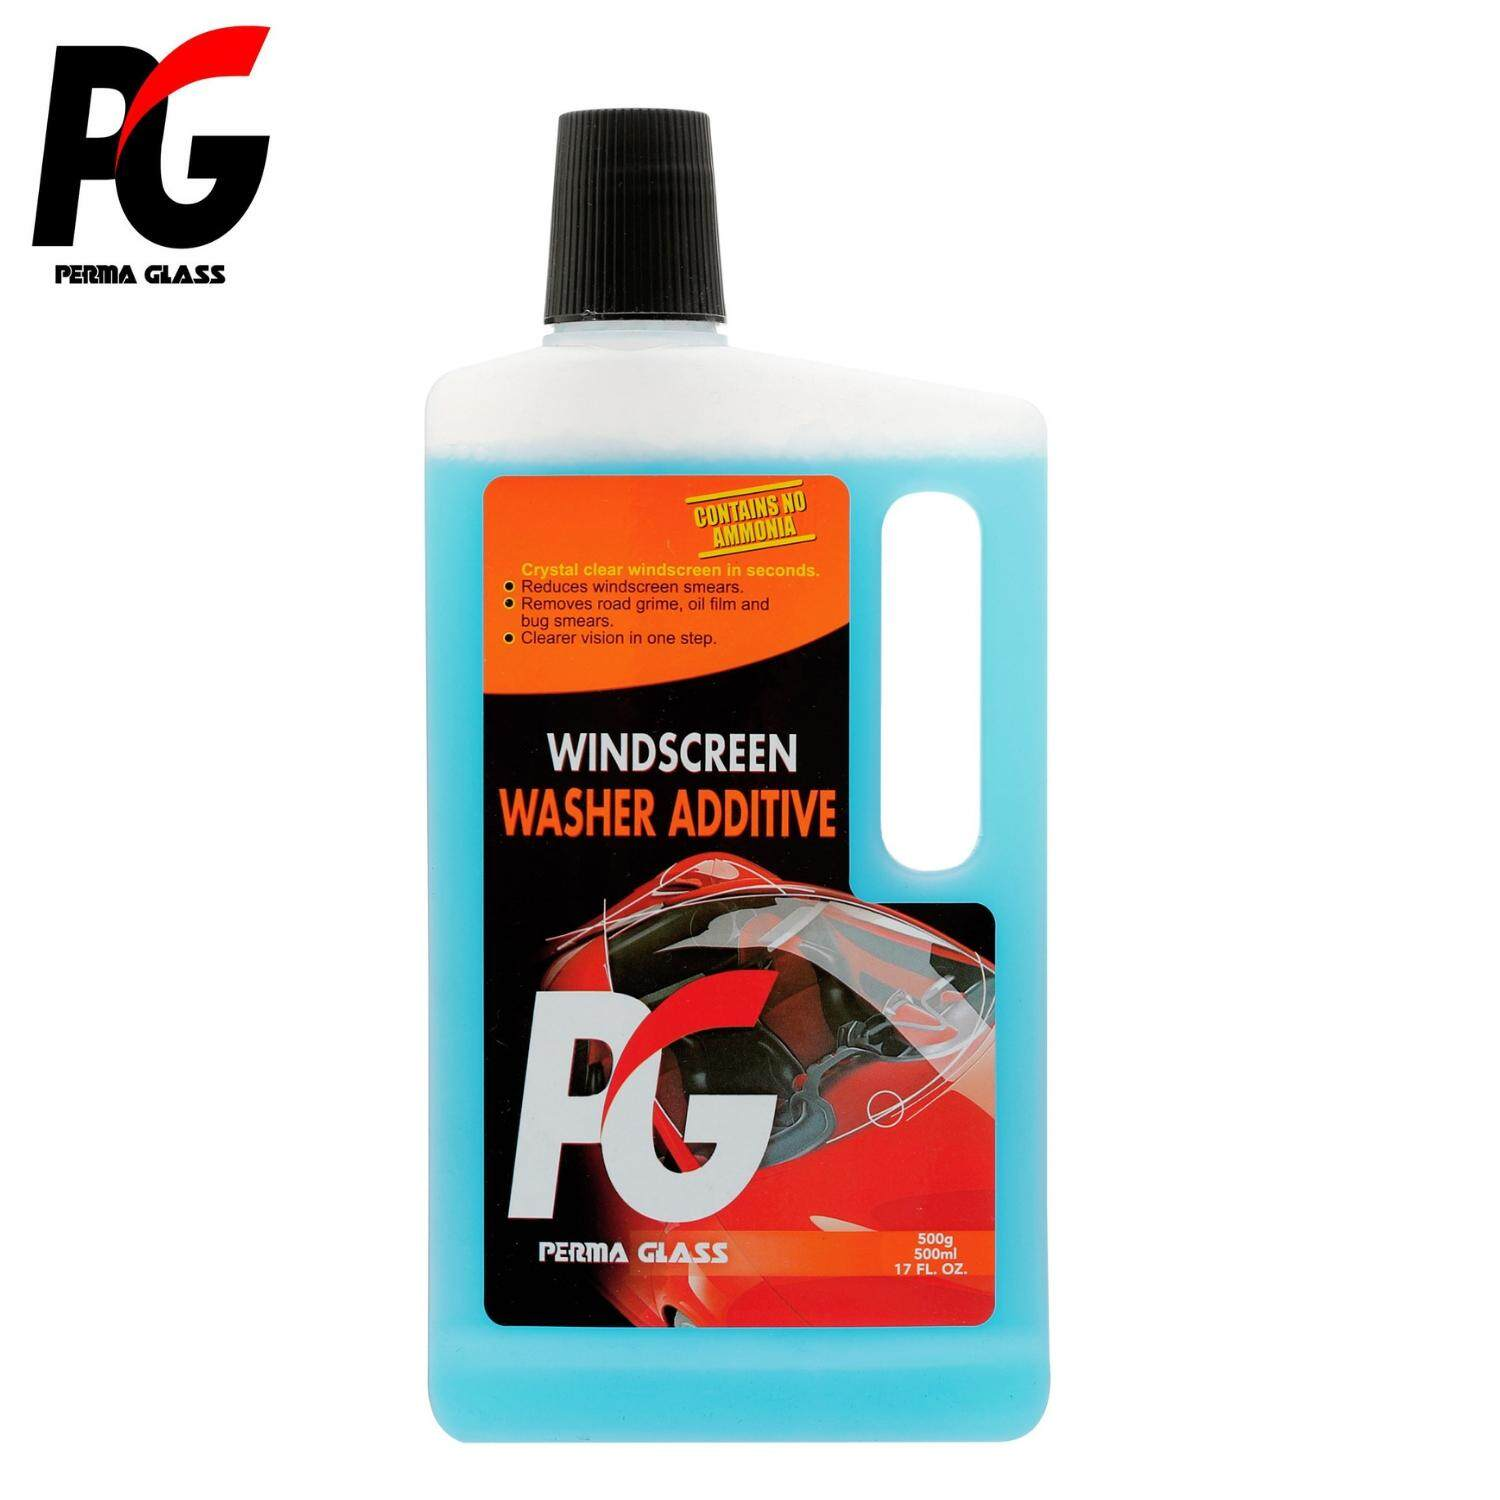 PG WINDSCREEN WASHER ADDITIVES (500ML) - CAR CARE EXTERIOR